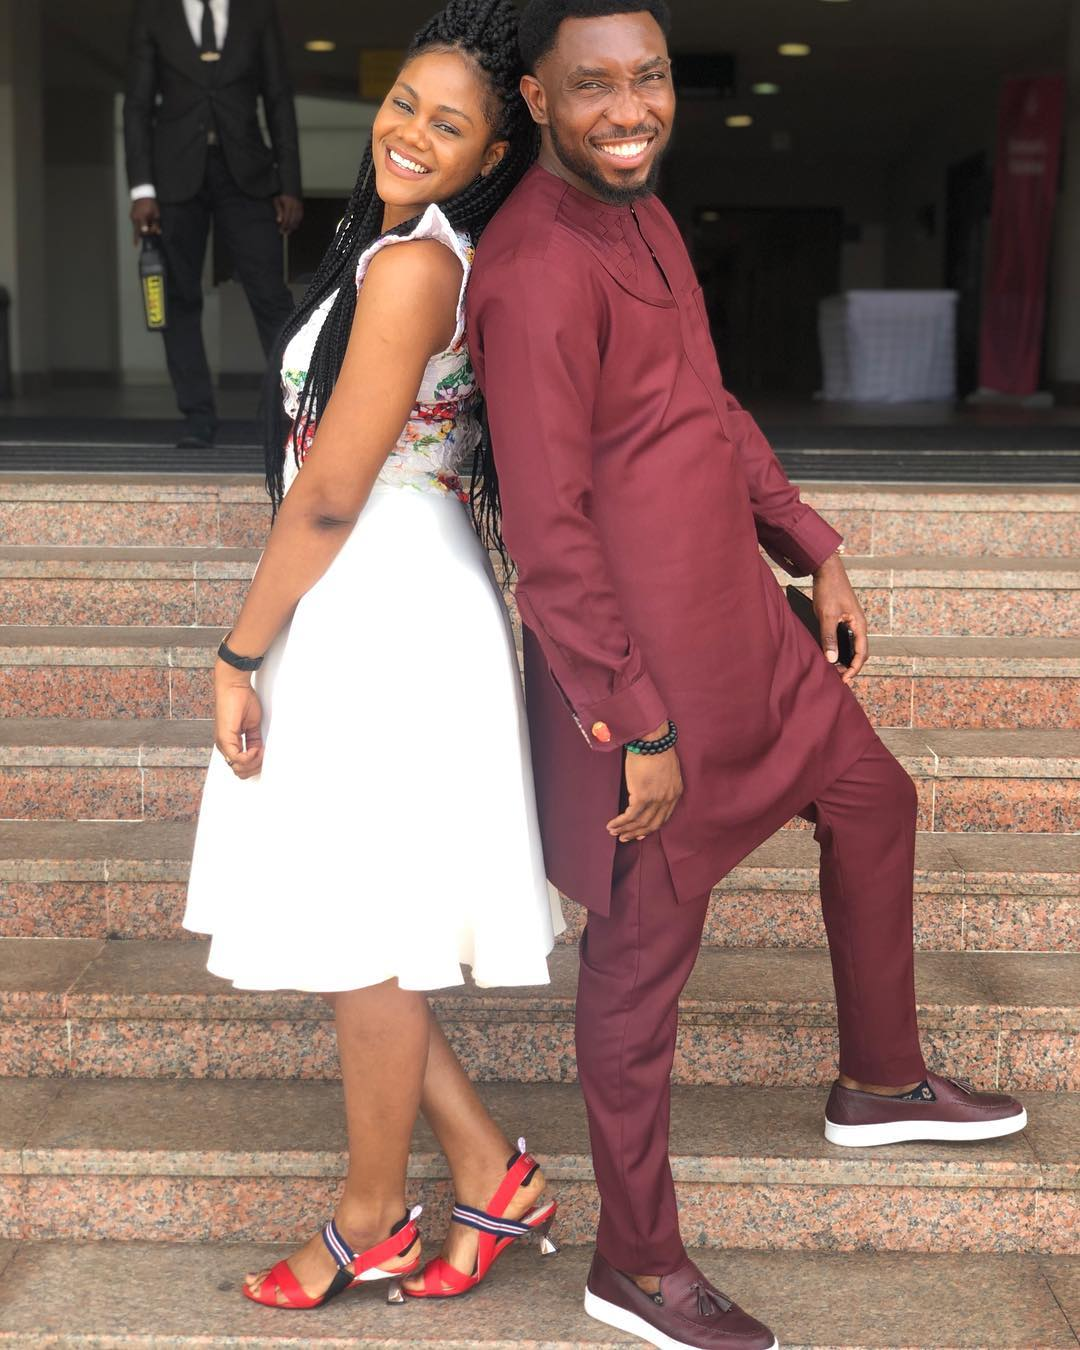 54511126 406876340129864 4936746257979175581 n - Timi Dakolo praises wife as they celebrate their 7th wedding anniversary